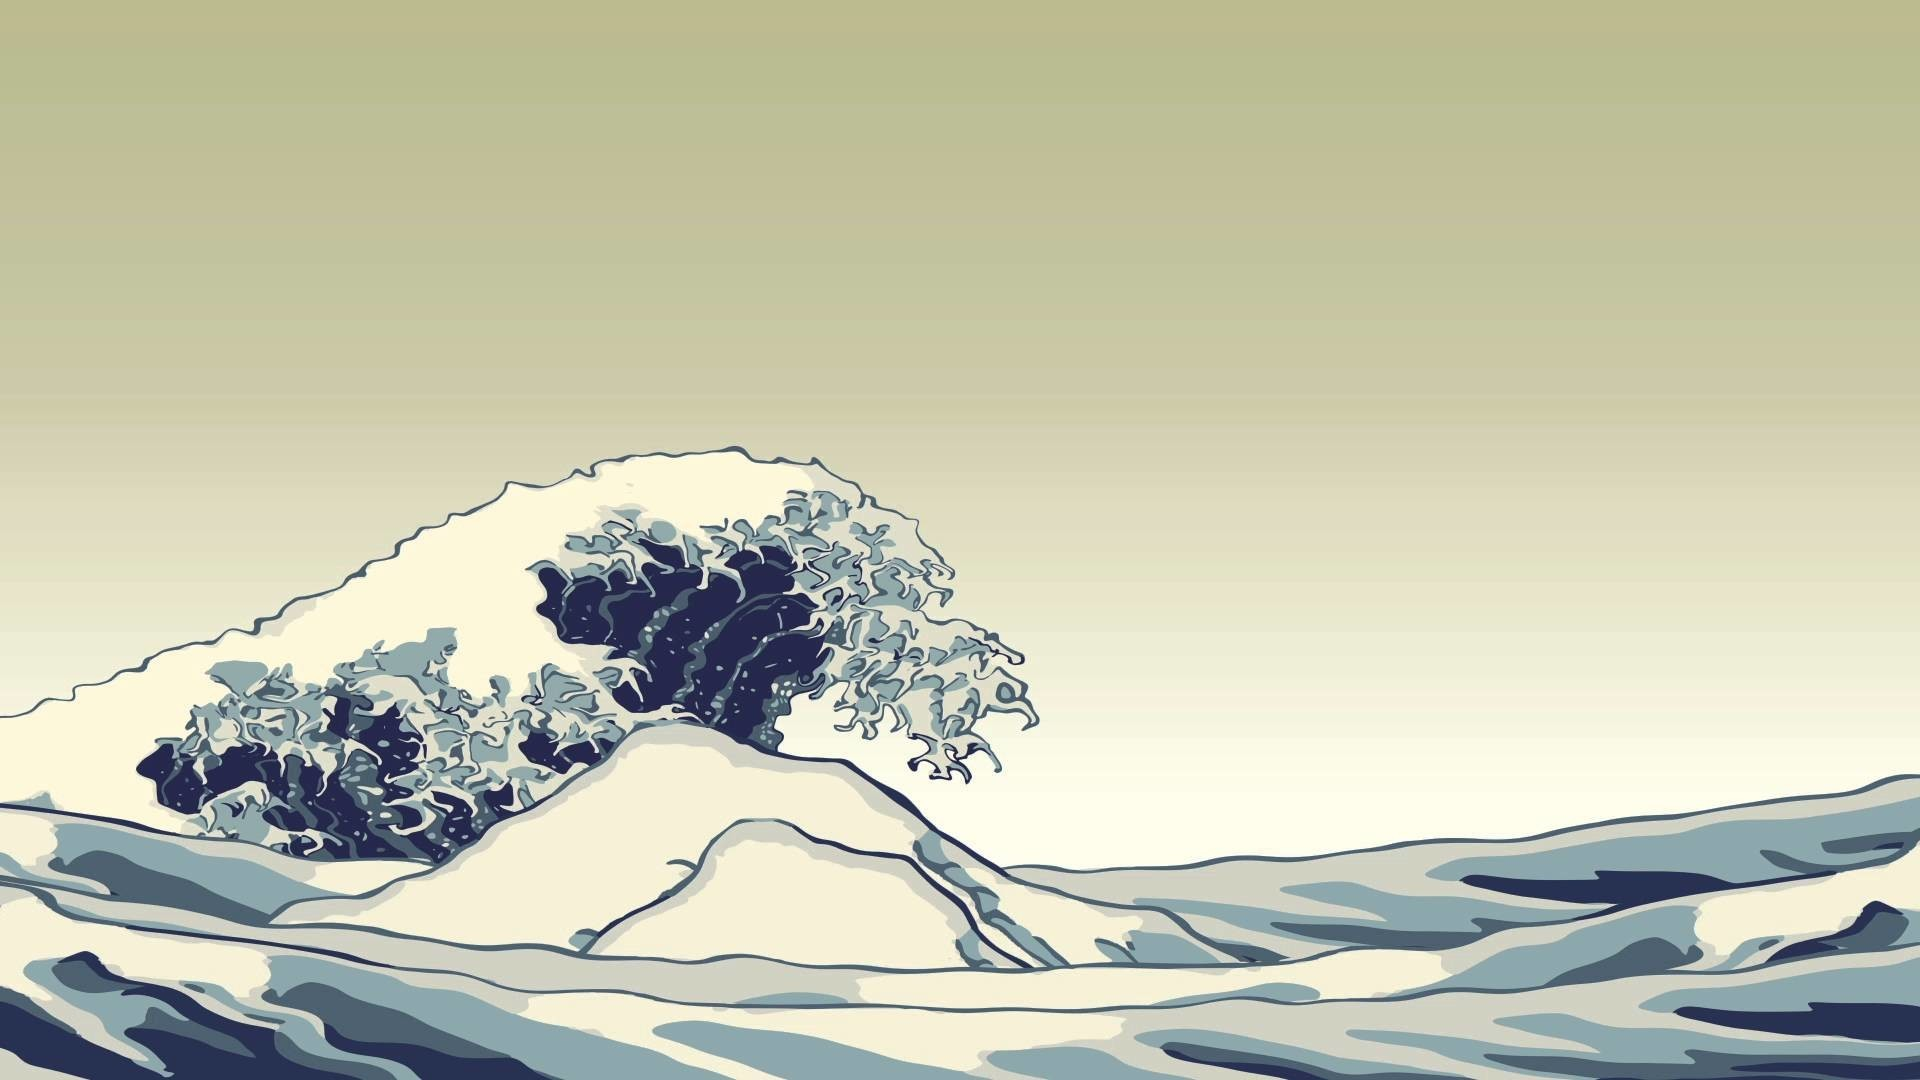 The Great Wave Wallpaper 66 Images